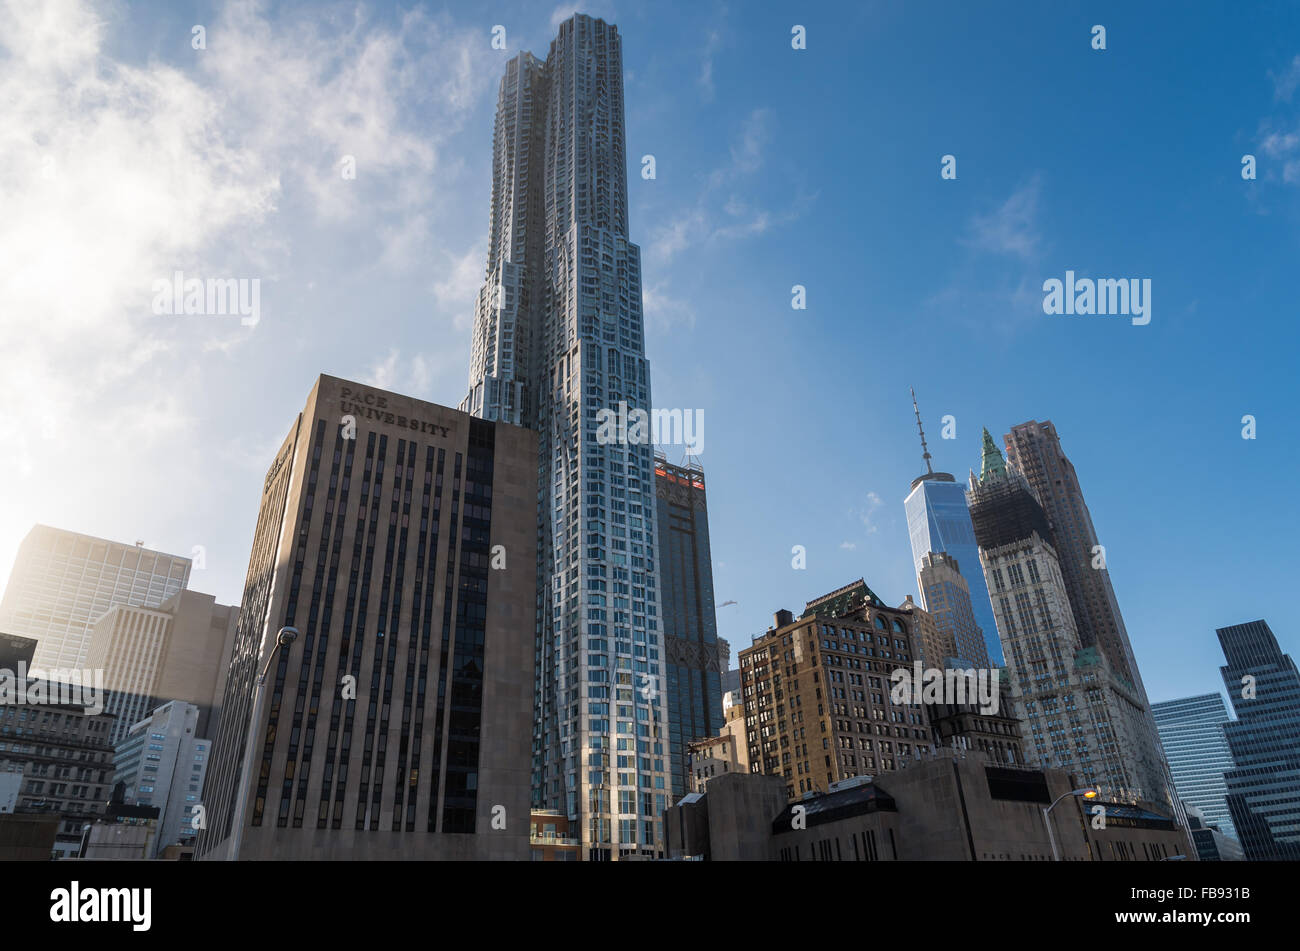 View of Pace University alongside New York by Gehry, one of the tallest residential apartment buildings in the world. - Stock Image